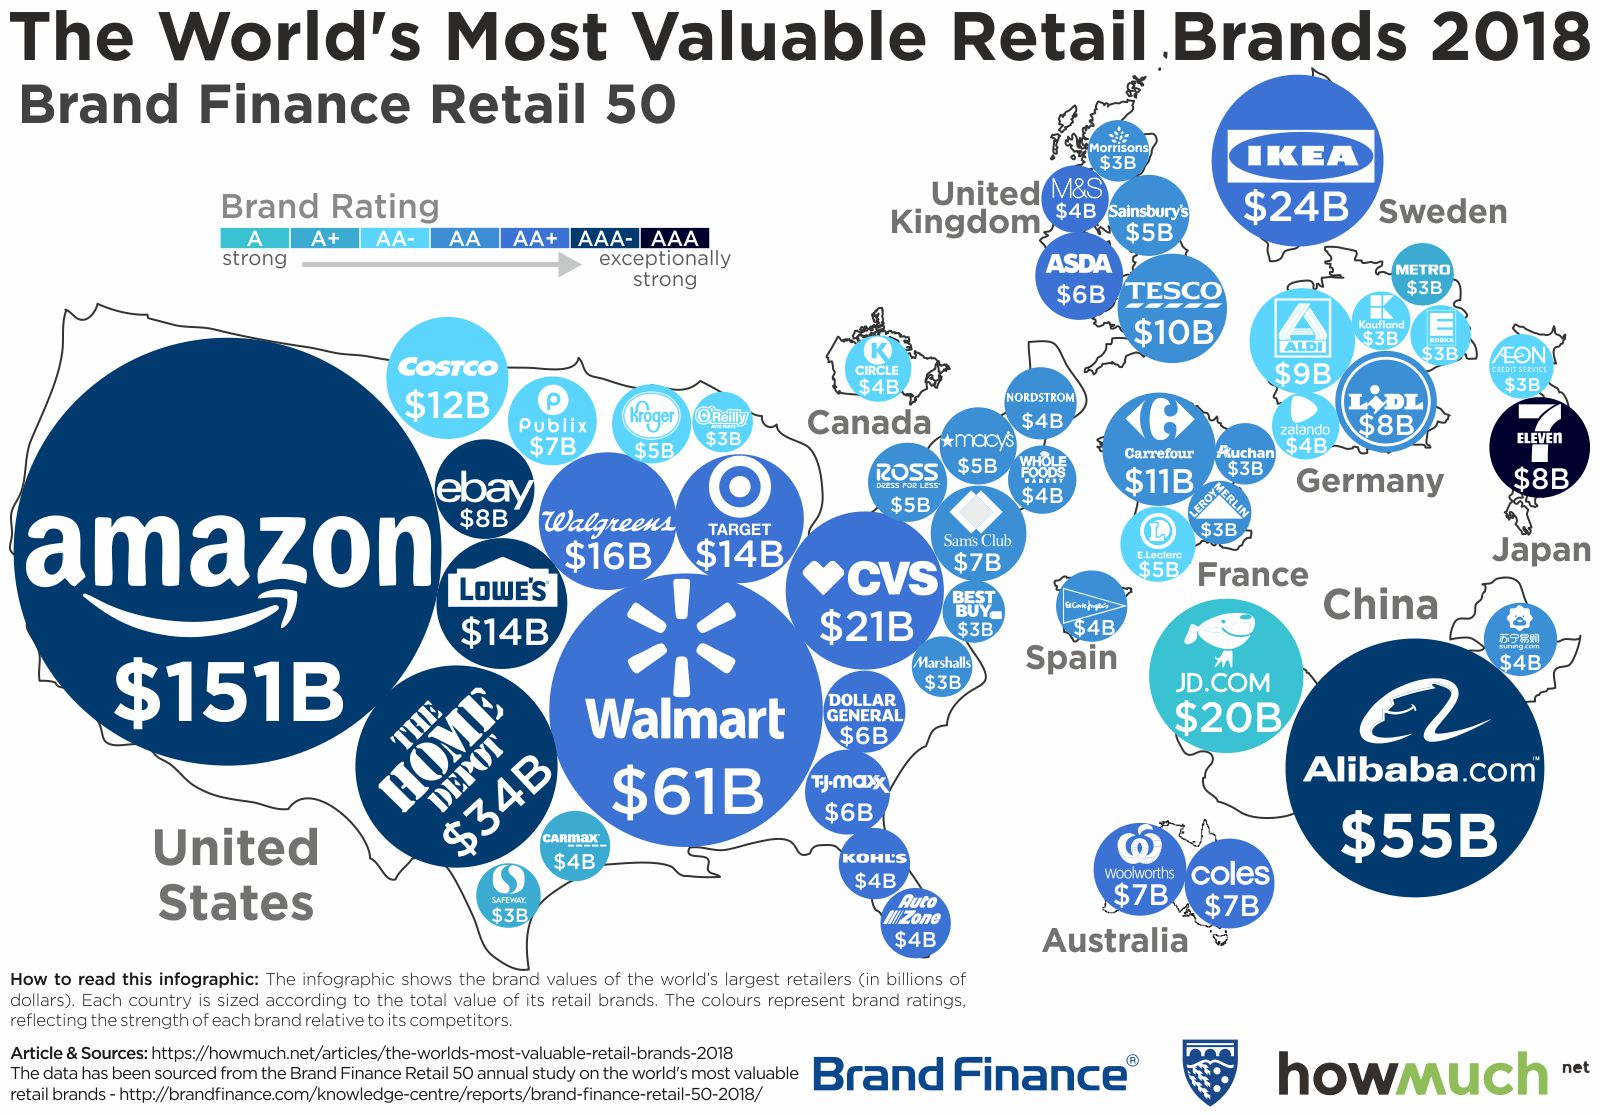 the most valuable retail brands